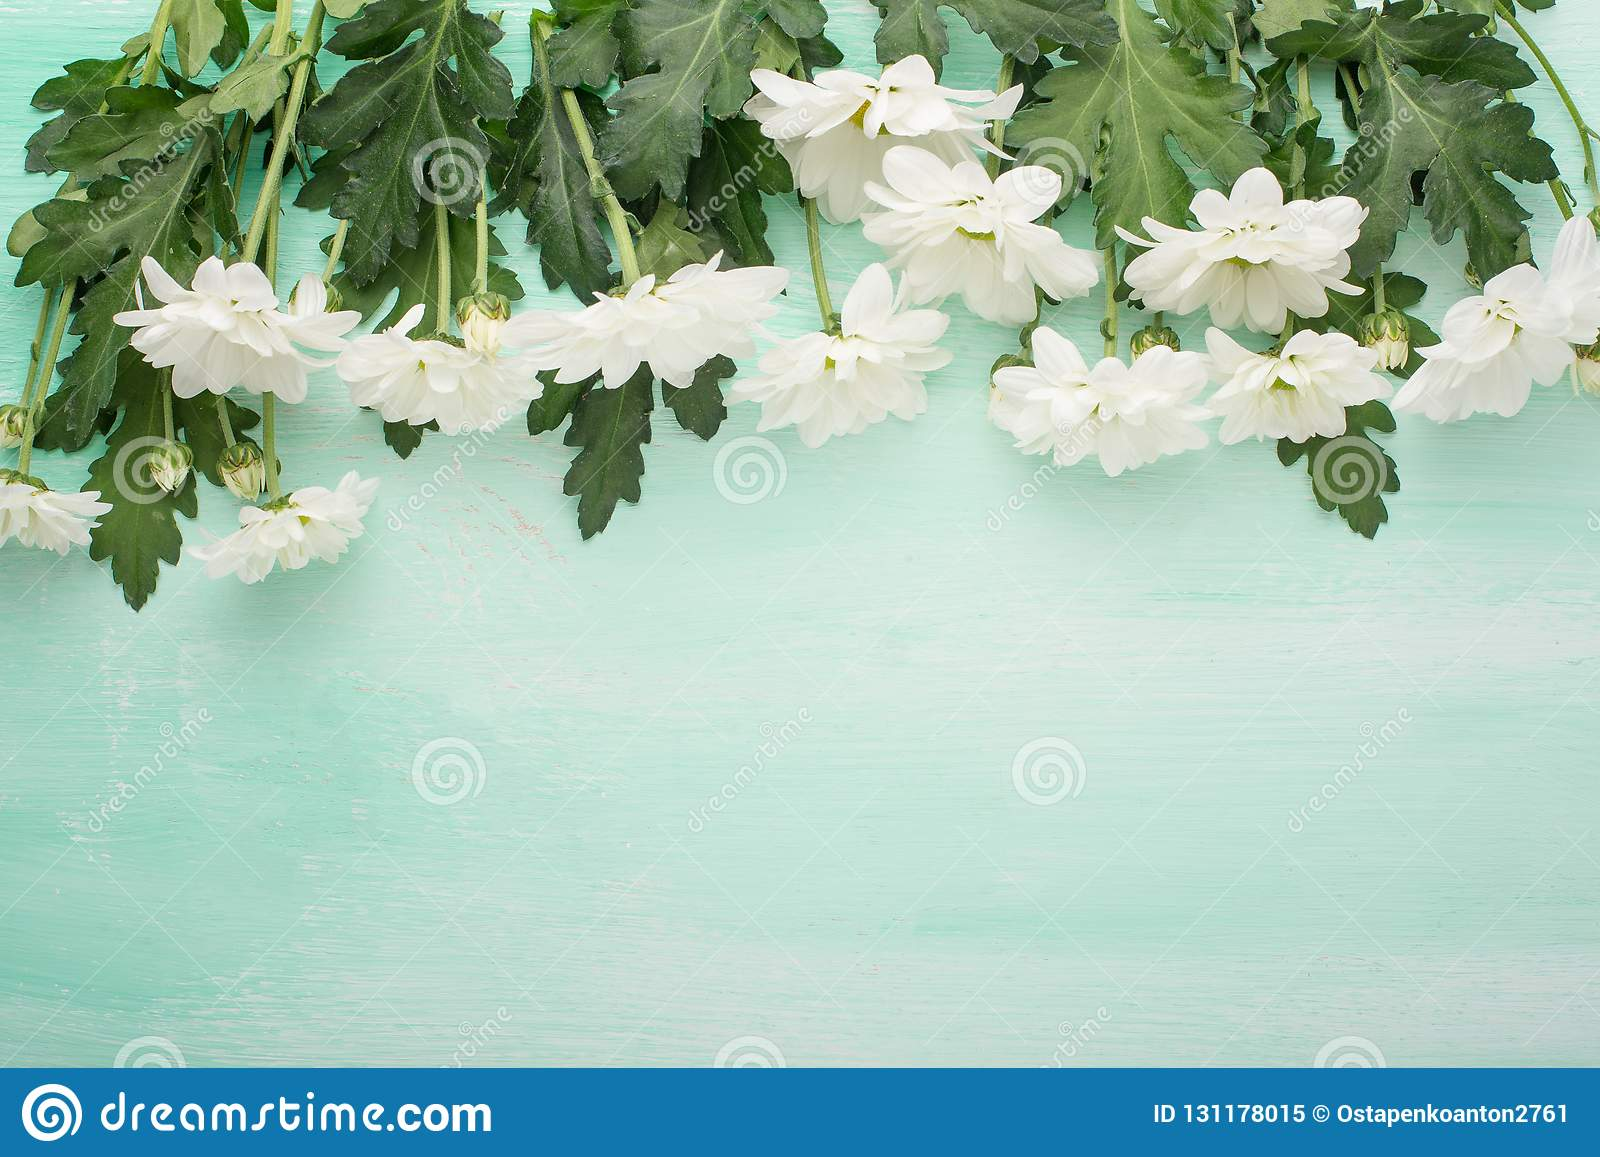 White chrysanthemums on a wooden background, top view, with empty space for writing or advertising